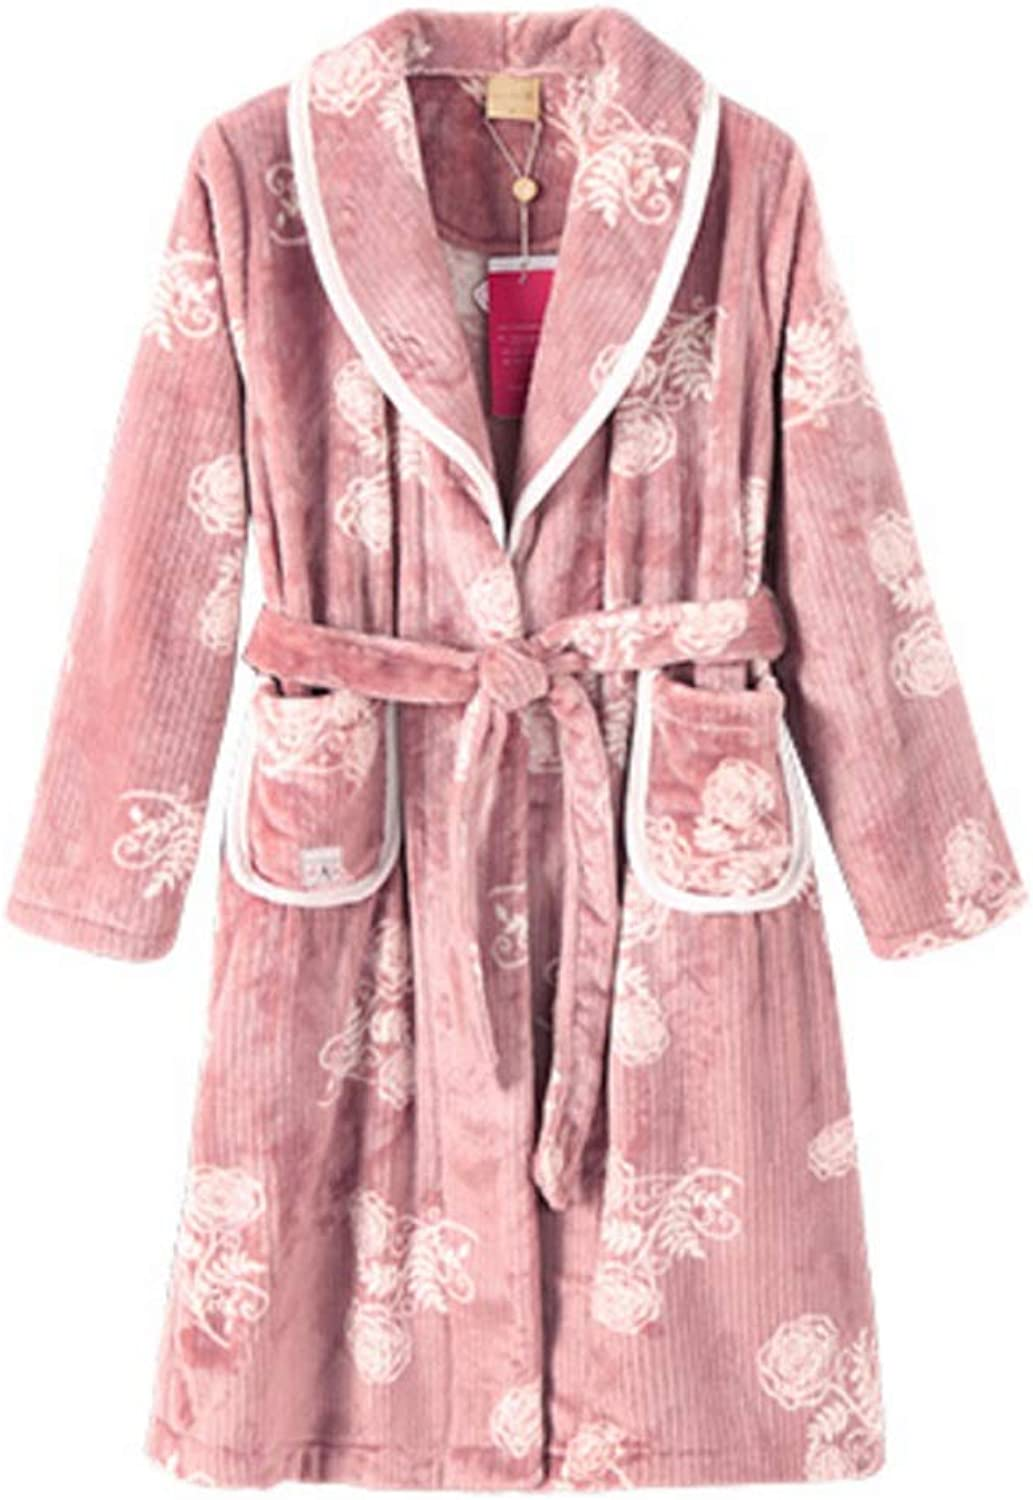 NAN Liang Autumn and Winter Bean Dark color Nightgown, Long Sleeve Thick Sweet Pajamas, Ladies Long Section Warm Home Service Bathrobe Soft (Size   L)